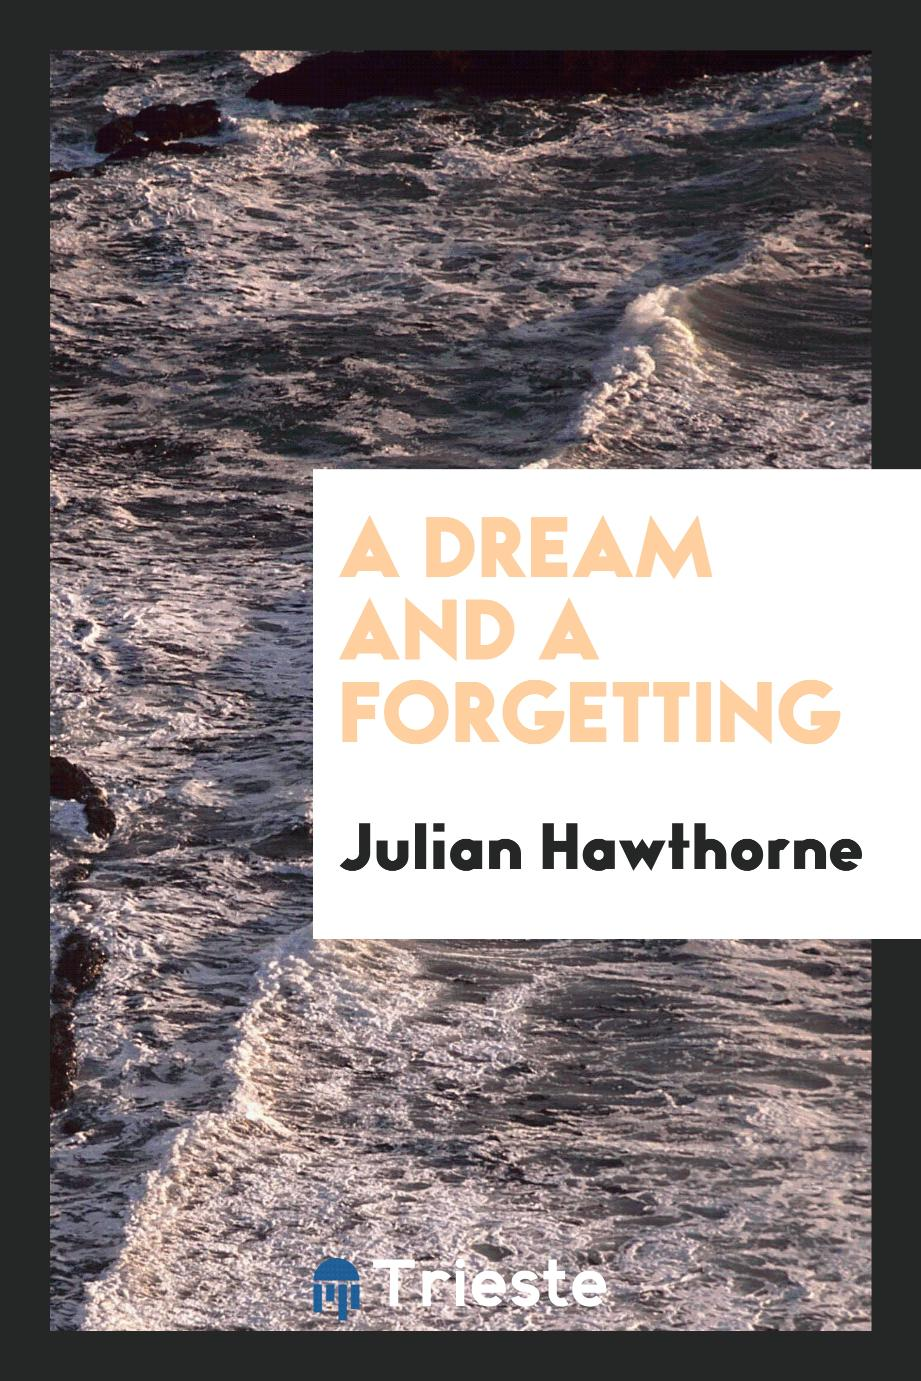 A Dream and a Forgetting